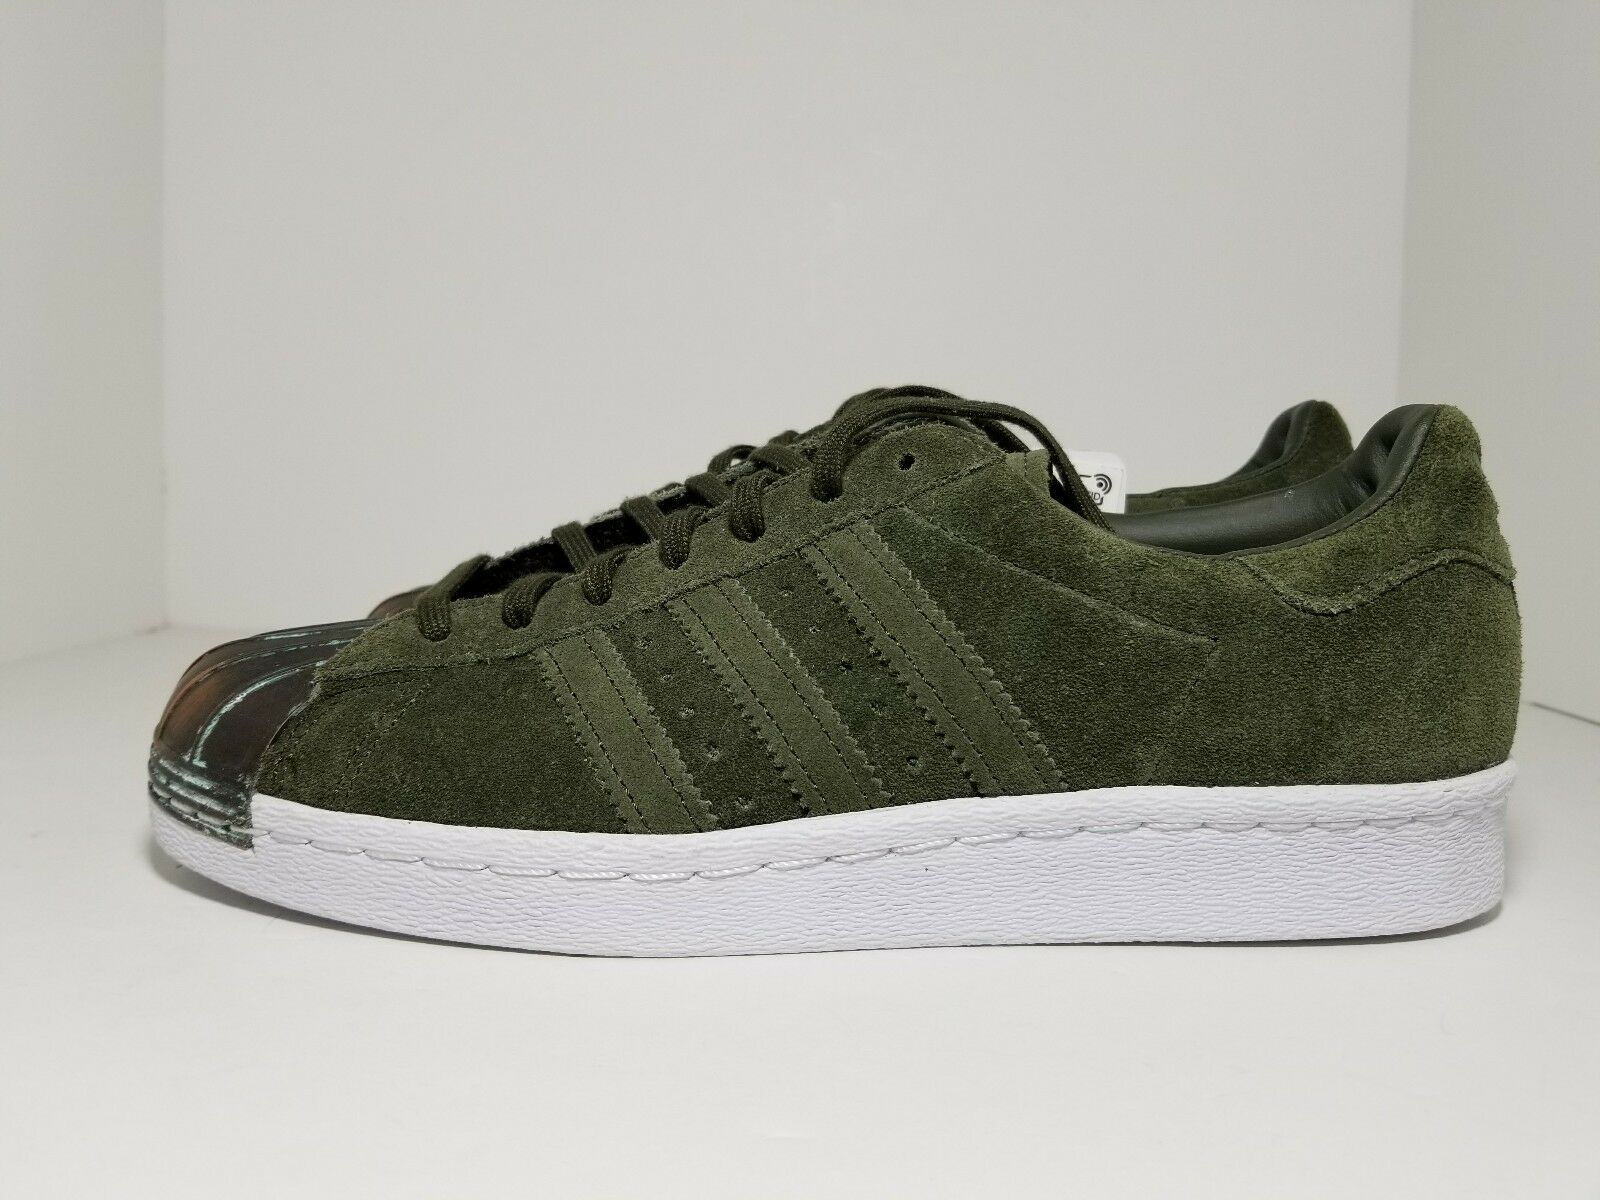 Details about Adidas Originals Superstar 80s Metal Toe Night Cargo CQ3105 Women's Shoes Size 8